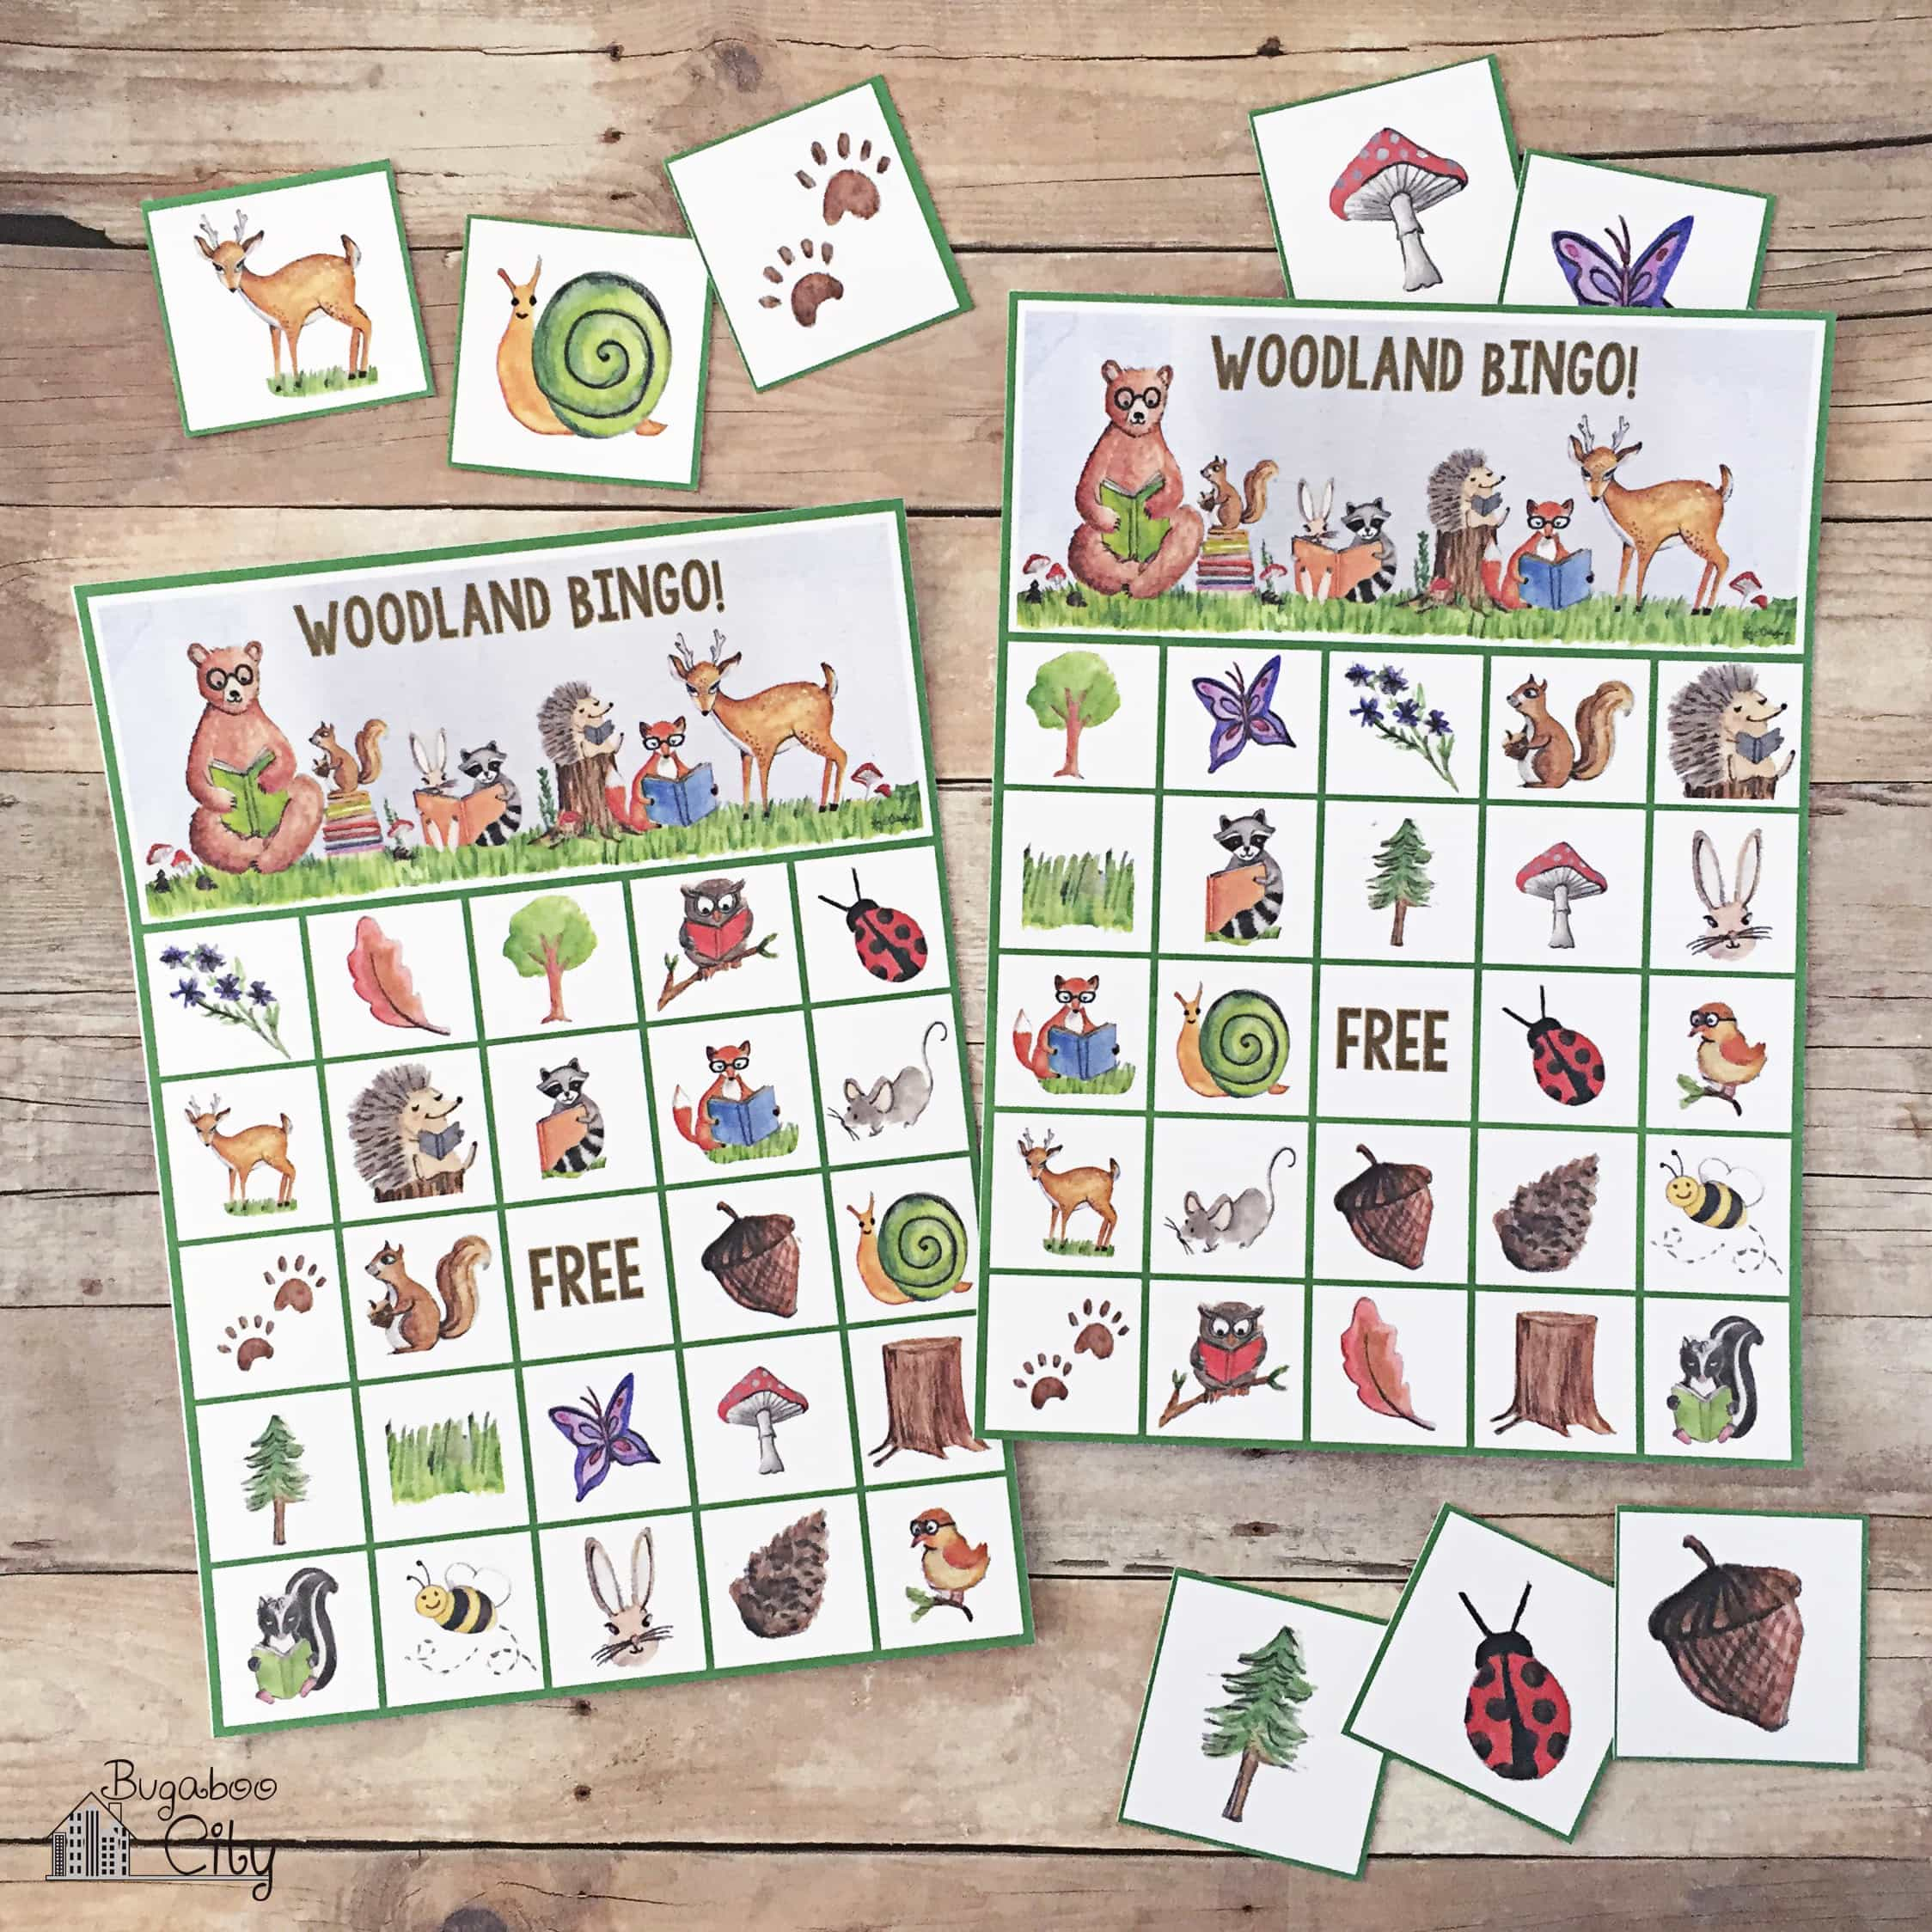 Woodland BINGO boards and call pieces laying on a wooden table.